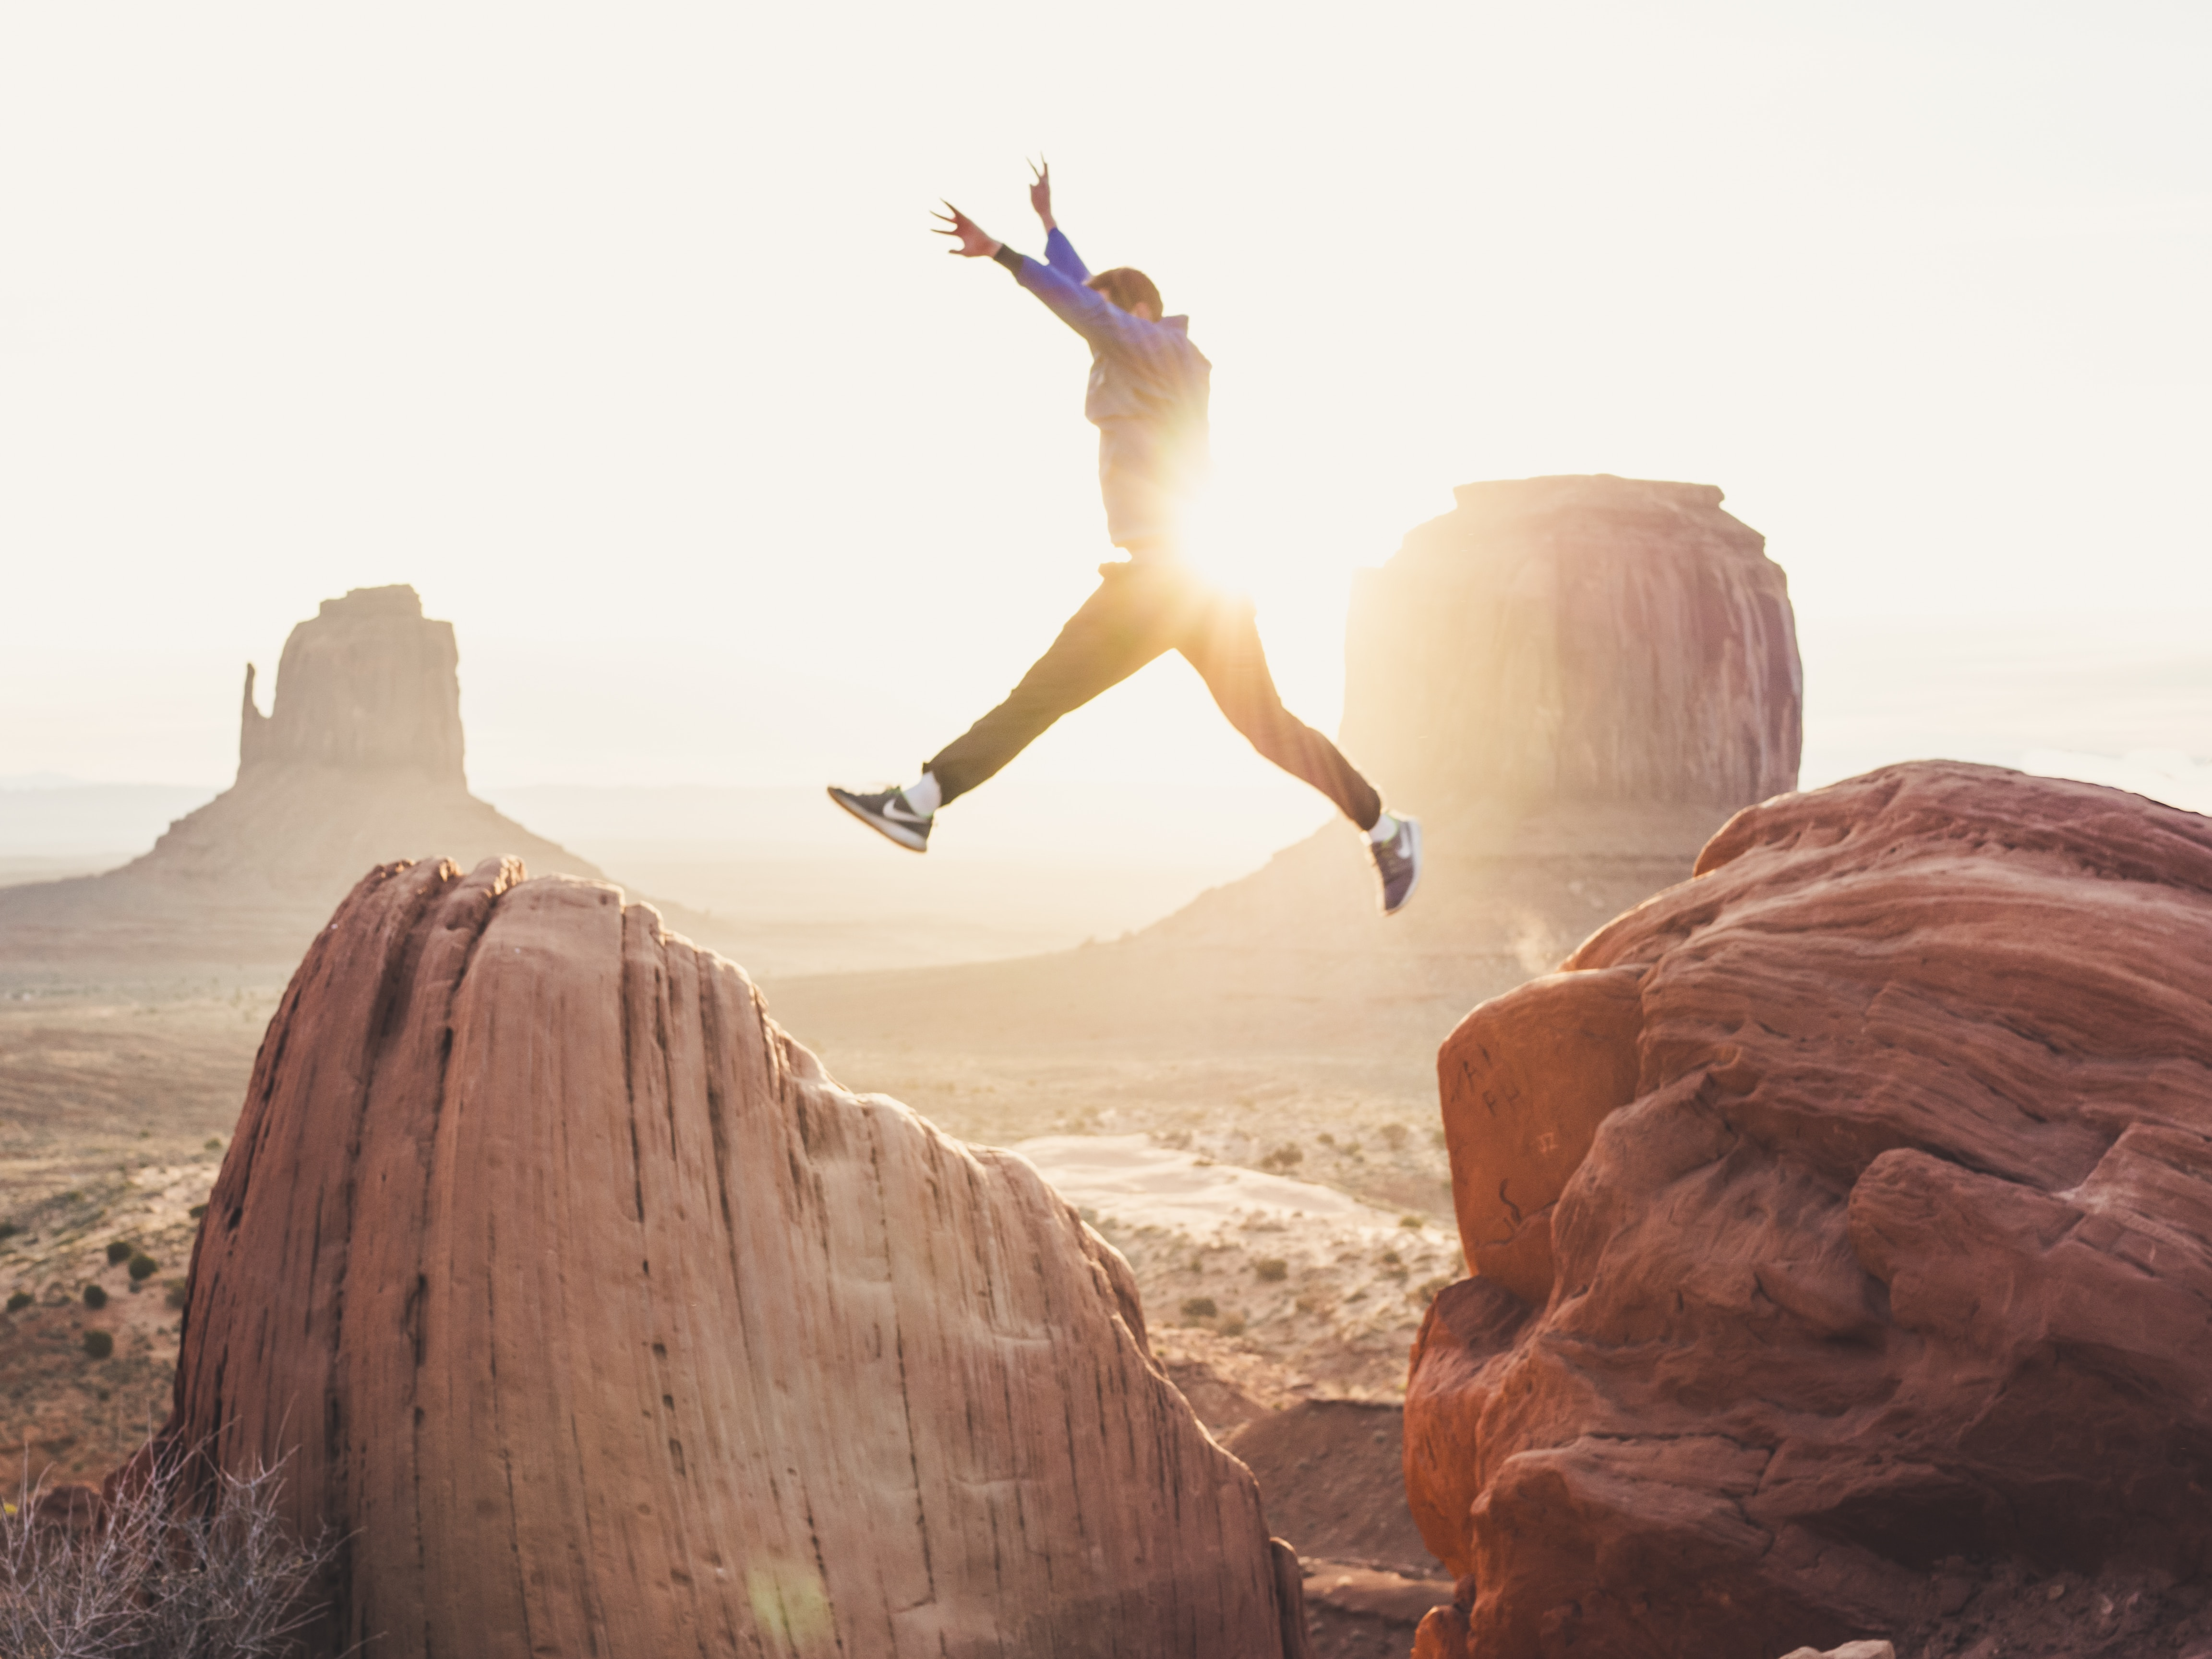 Person leaping across a chasm